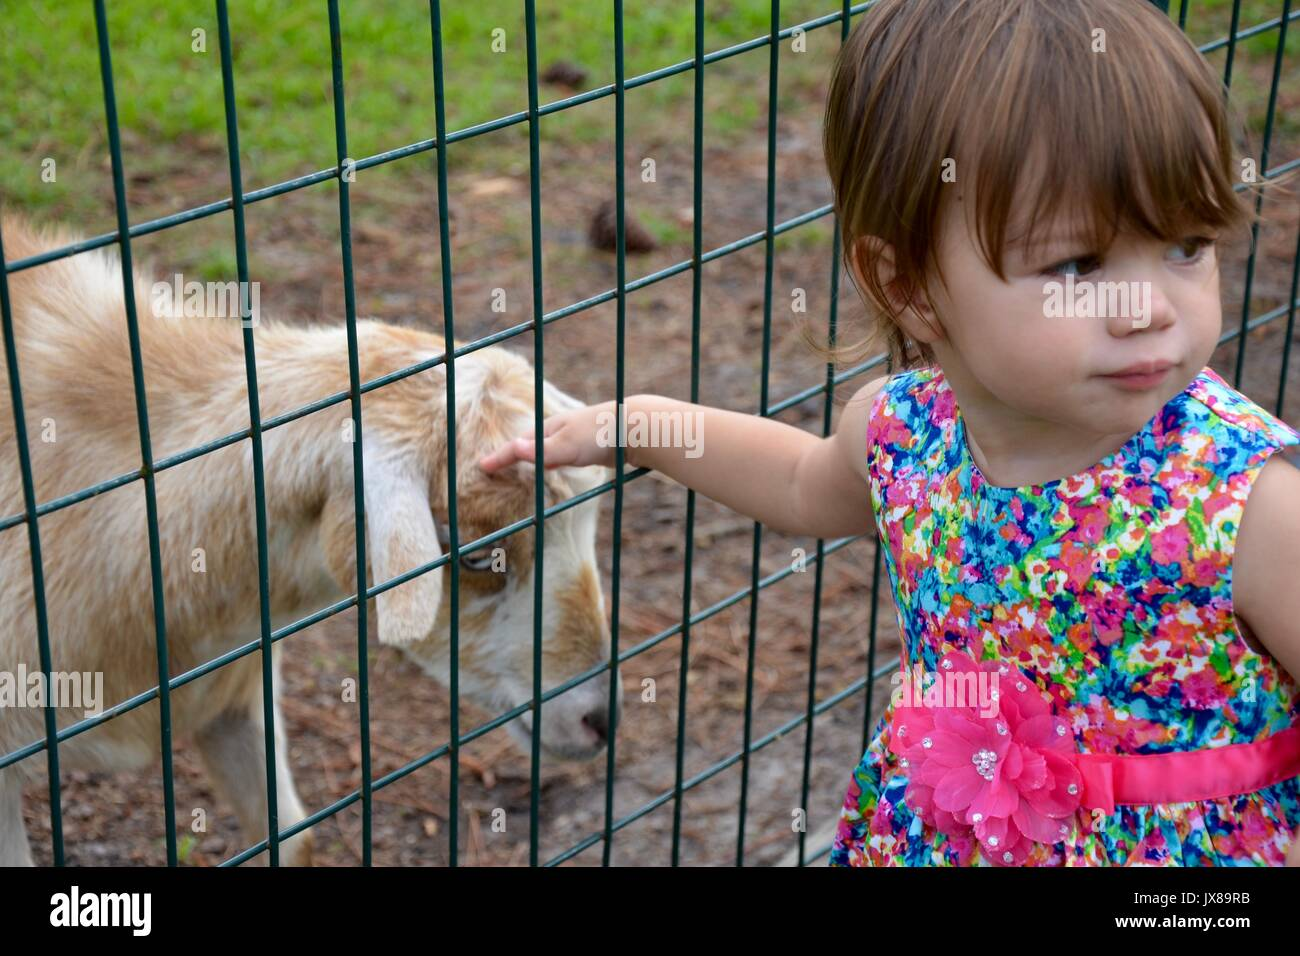 Little girl petting a goat through the fence. - Stock Image